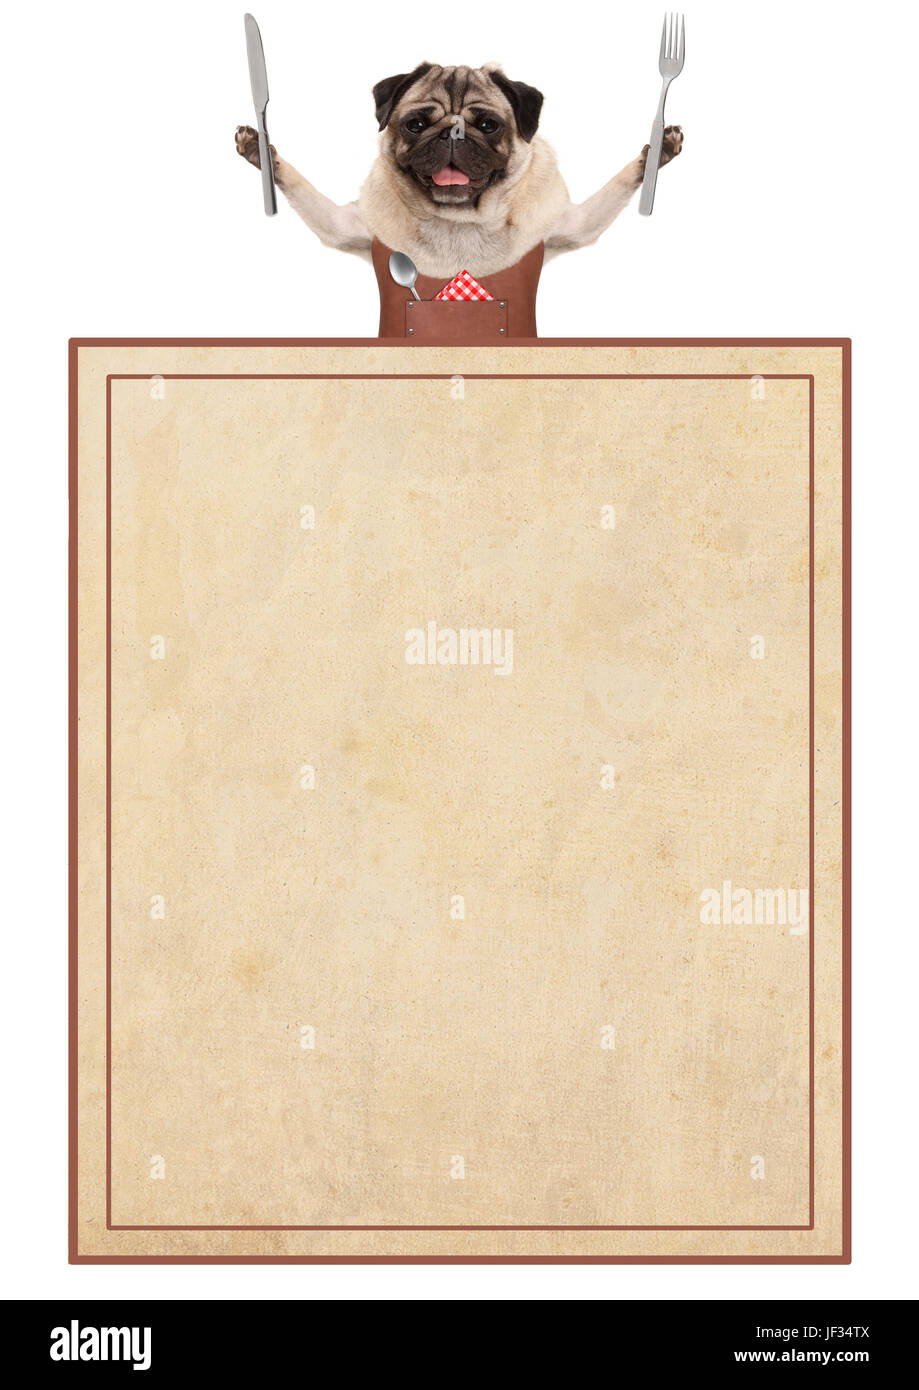 happy pug dog wearing leather bbq apron, holding cutlery for eating, with old vintage paper menu card, isolated - Stock Image